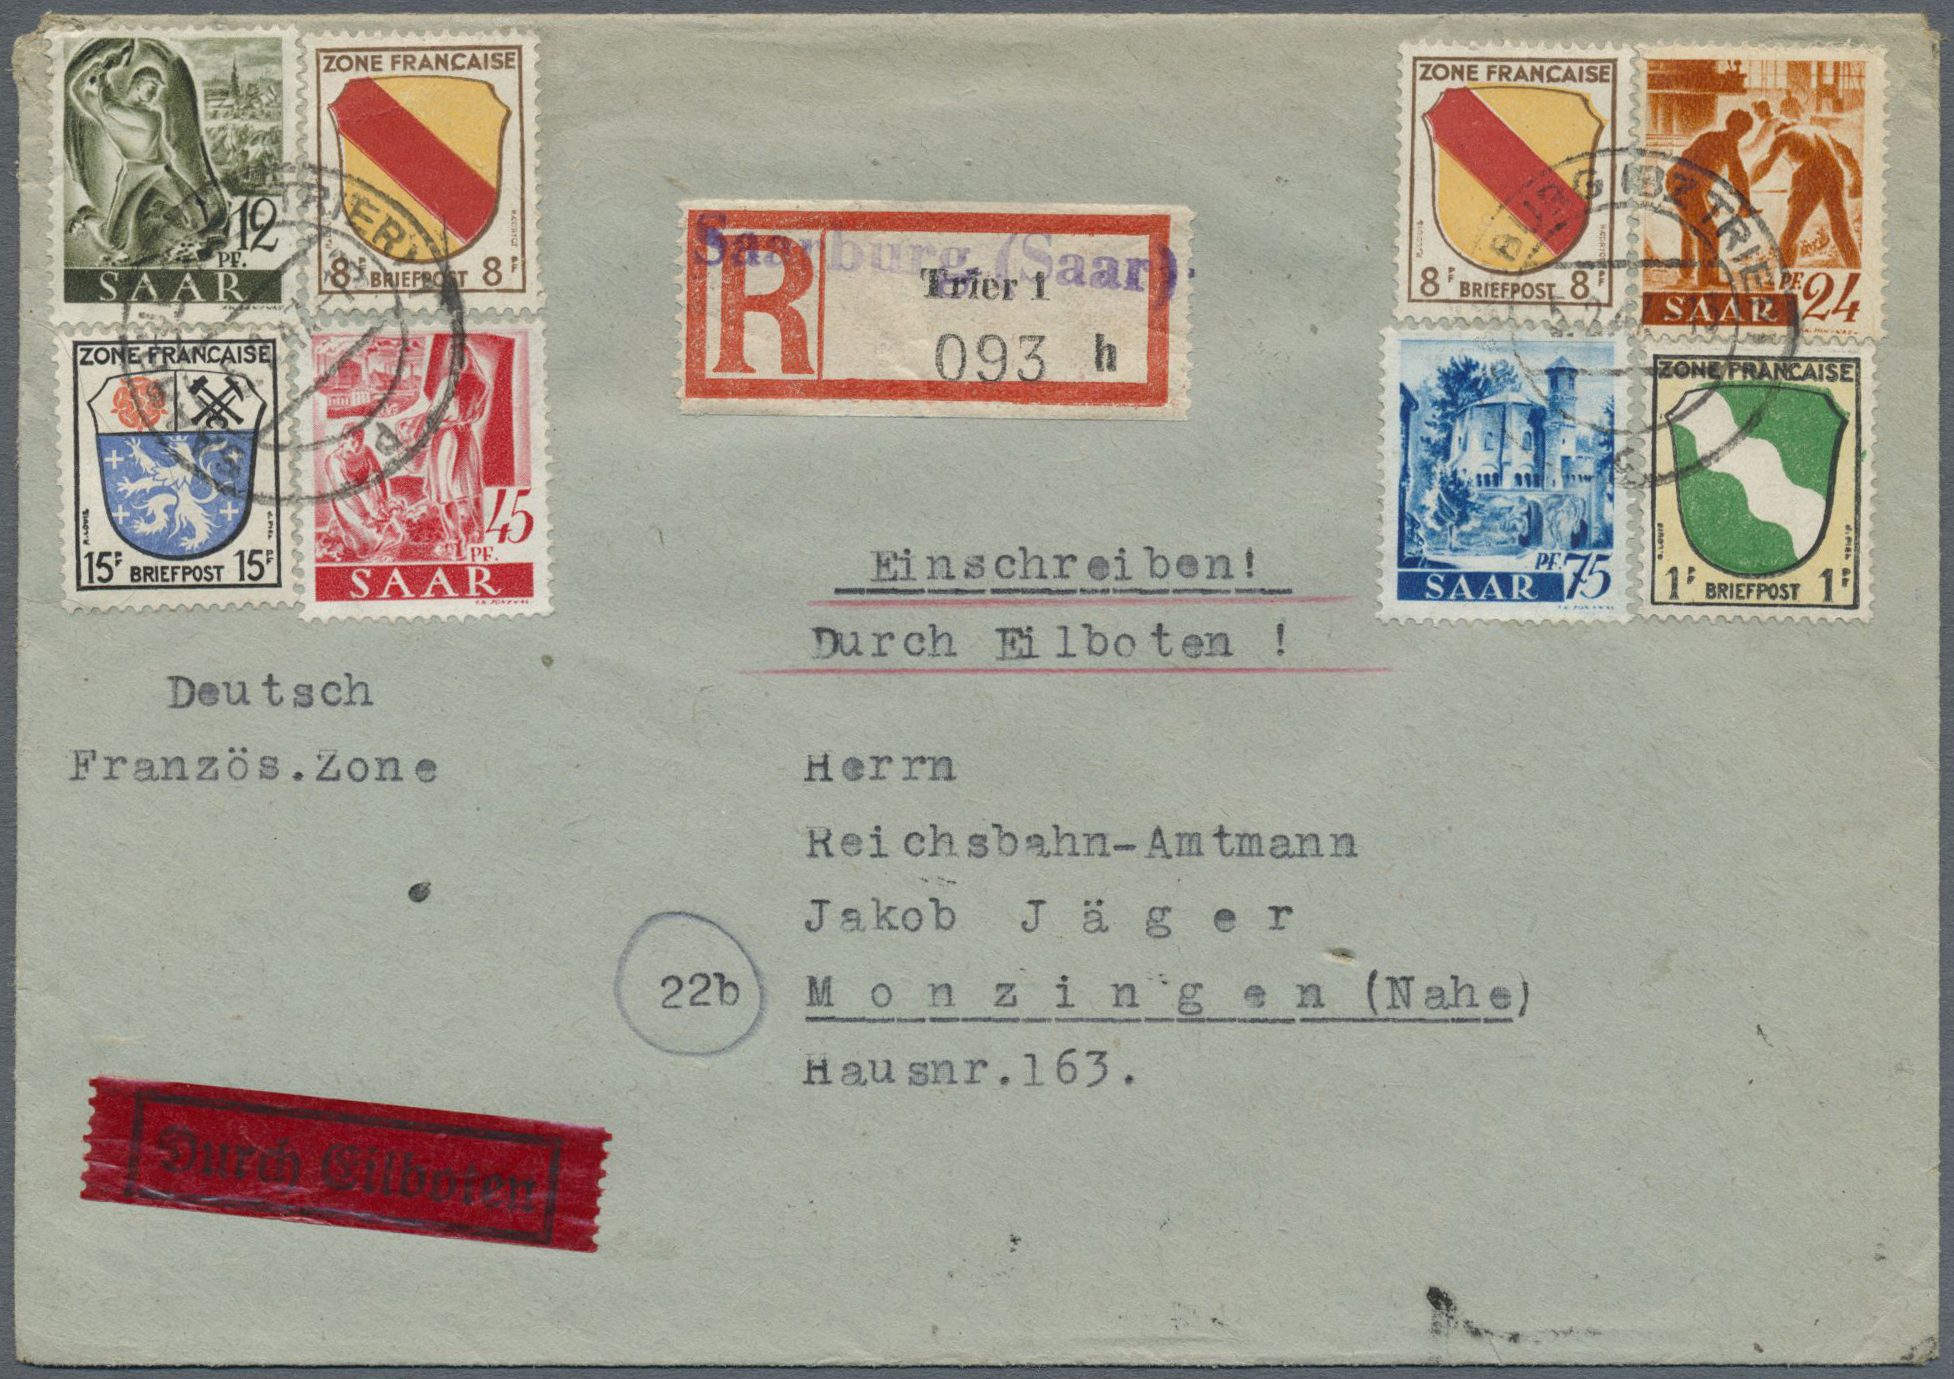 Lot 38284 - Saarland (1947/56)  -  Auktionshaus Christoph Gärtner GmbH & Co. KG Collections Germany,  Collections Supplement, Surprise boxes #39 Day 7